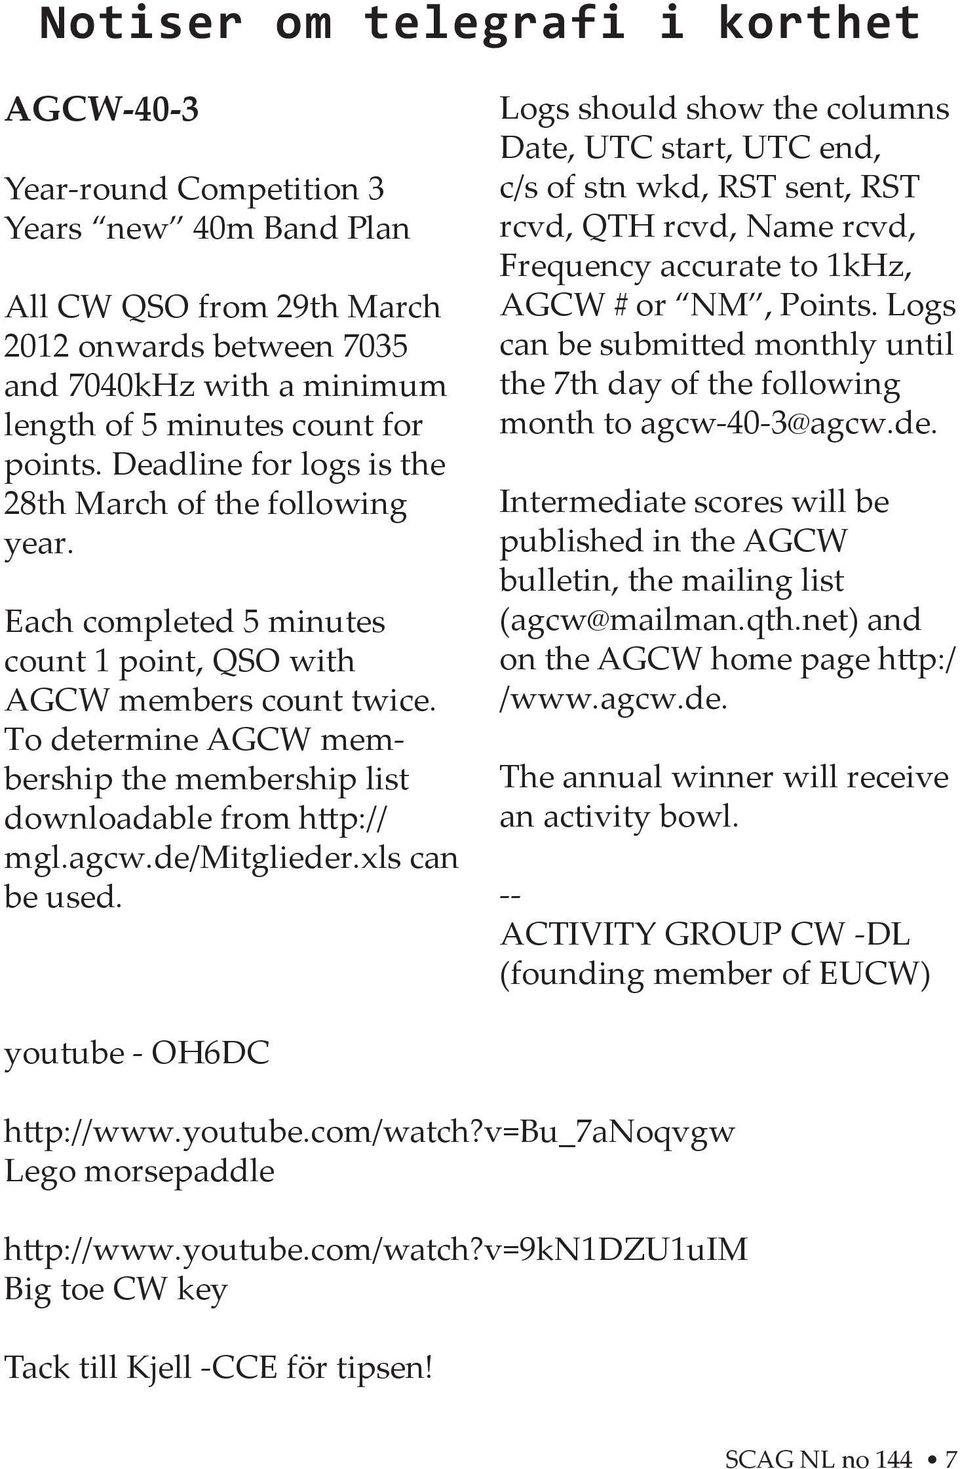 To determine AGCW membership the membership list downloadable from h p:// mgl.agcw.de/mitglieder.xls can be used.